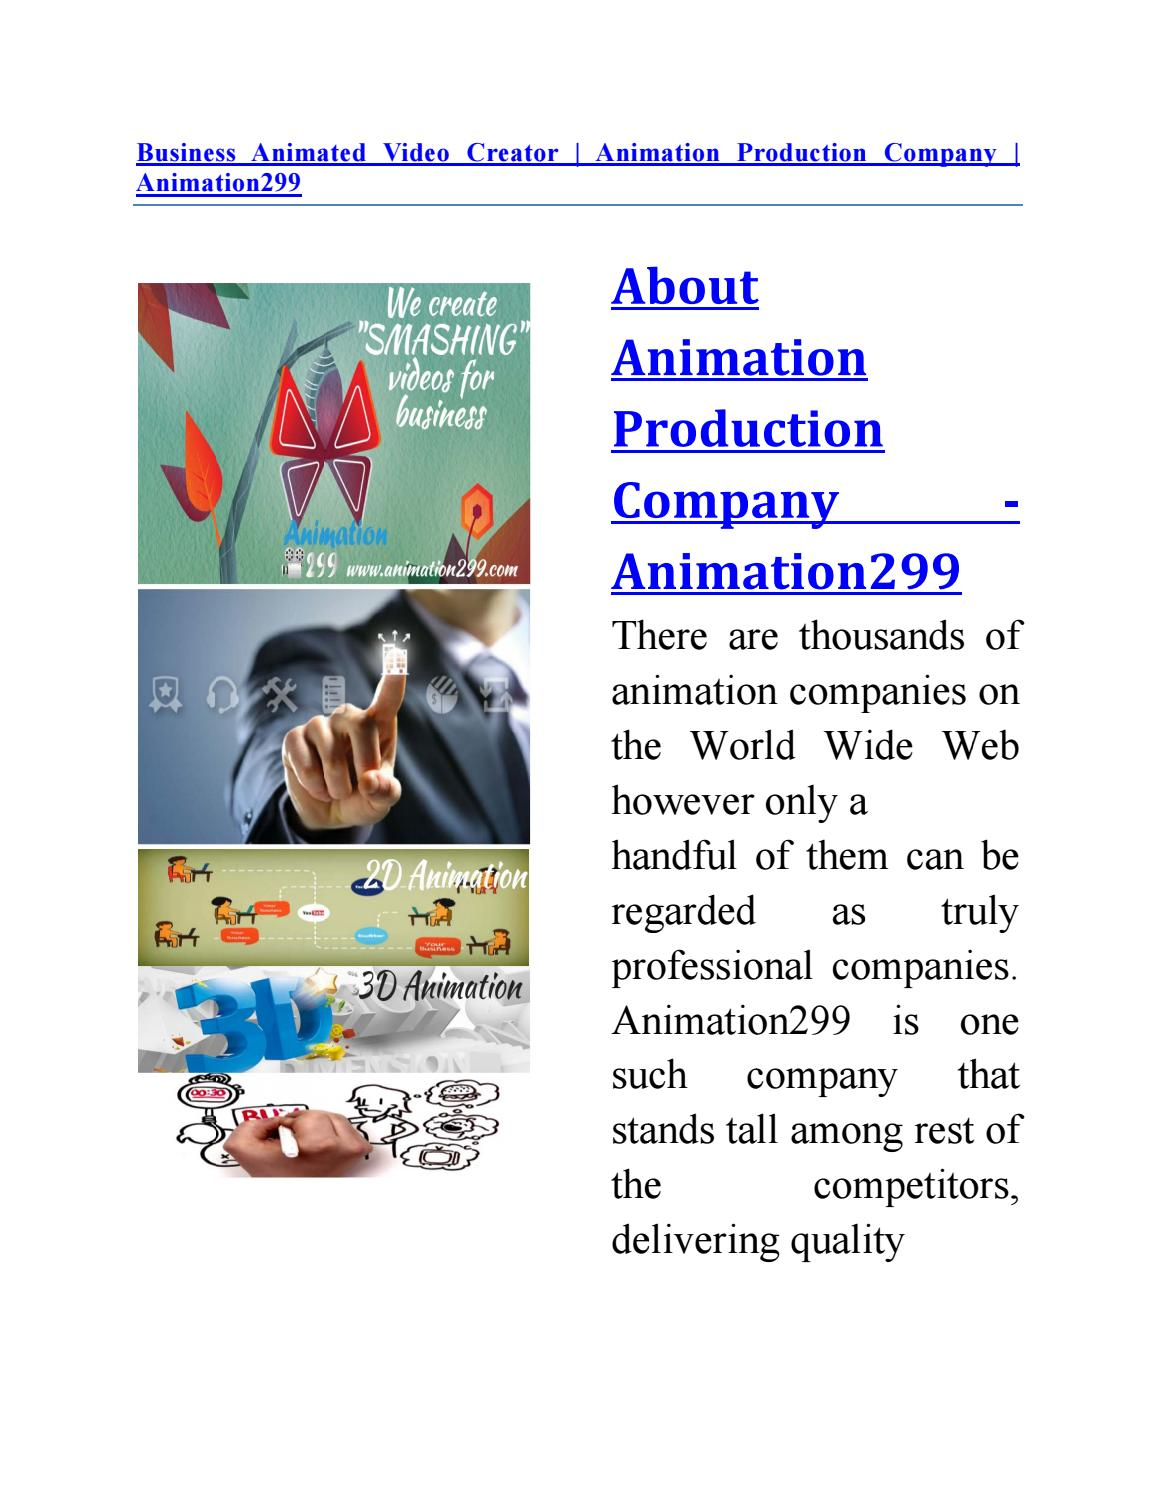 Business animated video creator animation production company